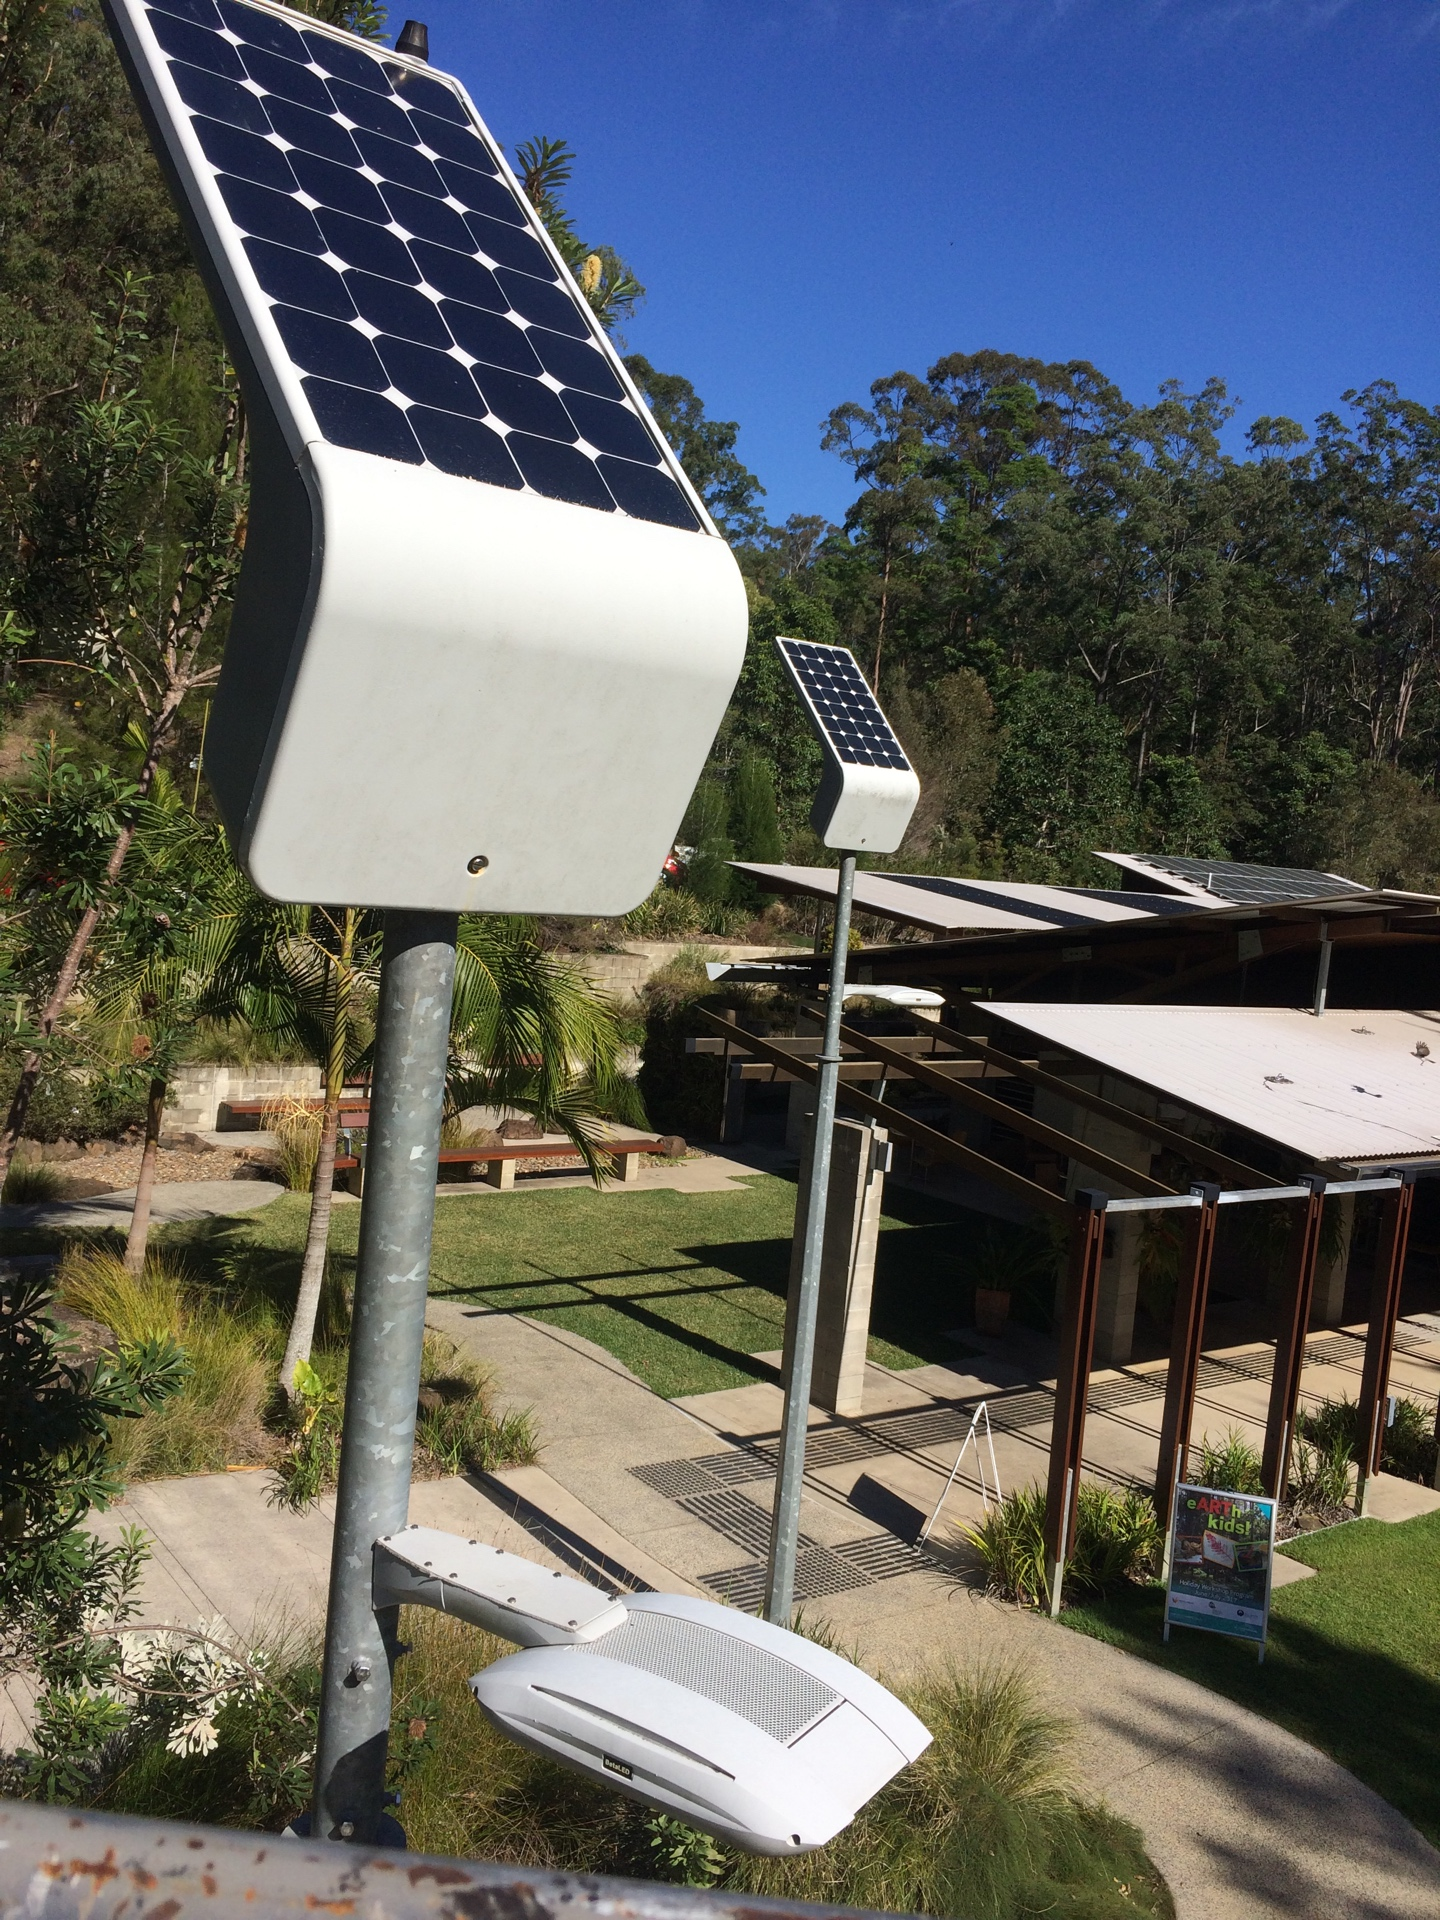 Why Solar Led Lighting Solar Led Lighting Solutions Orion